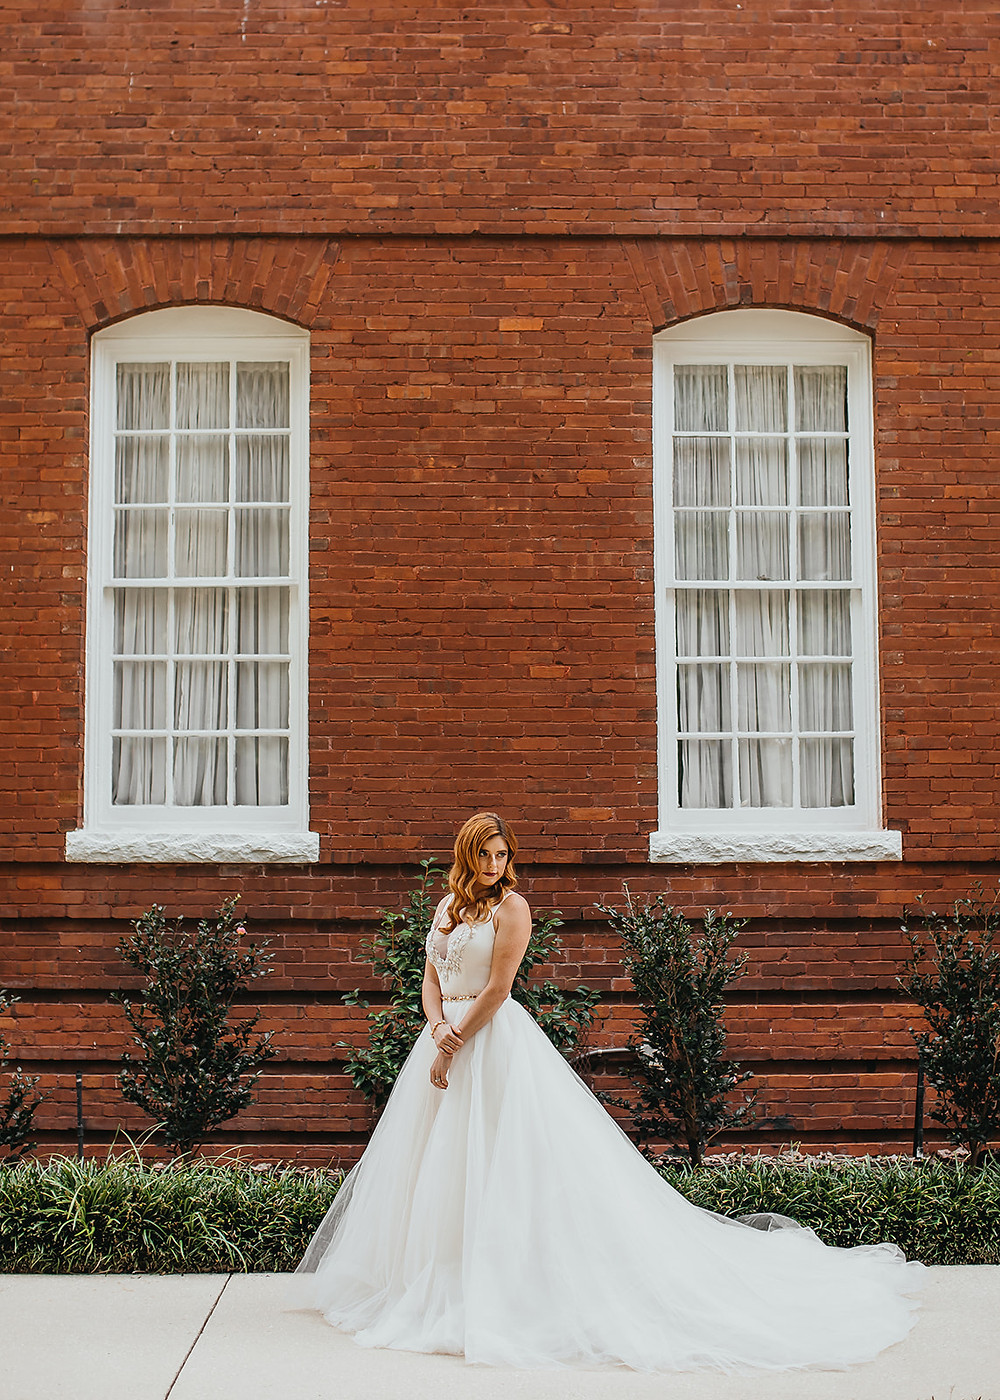 Woman in wedding dress in front of red brick building